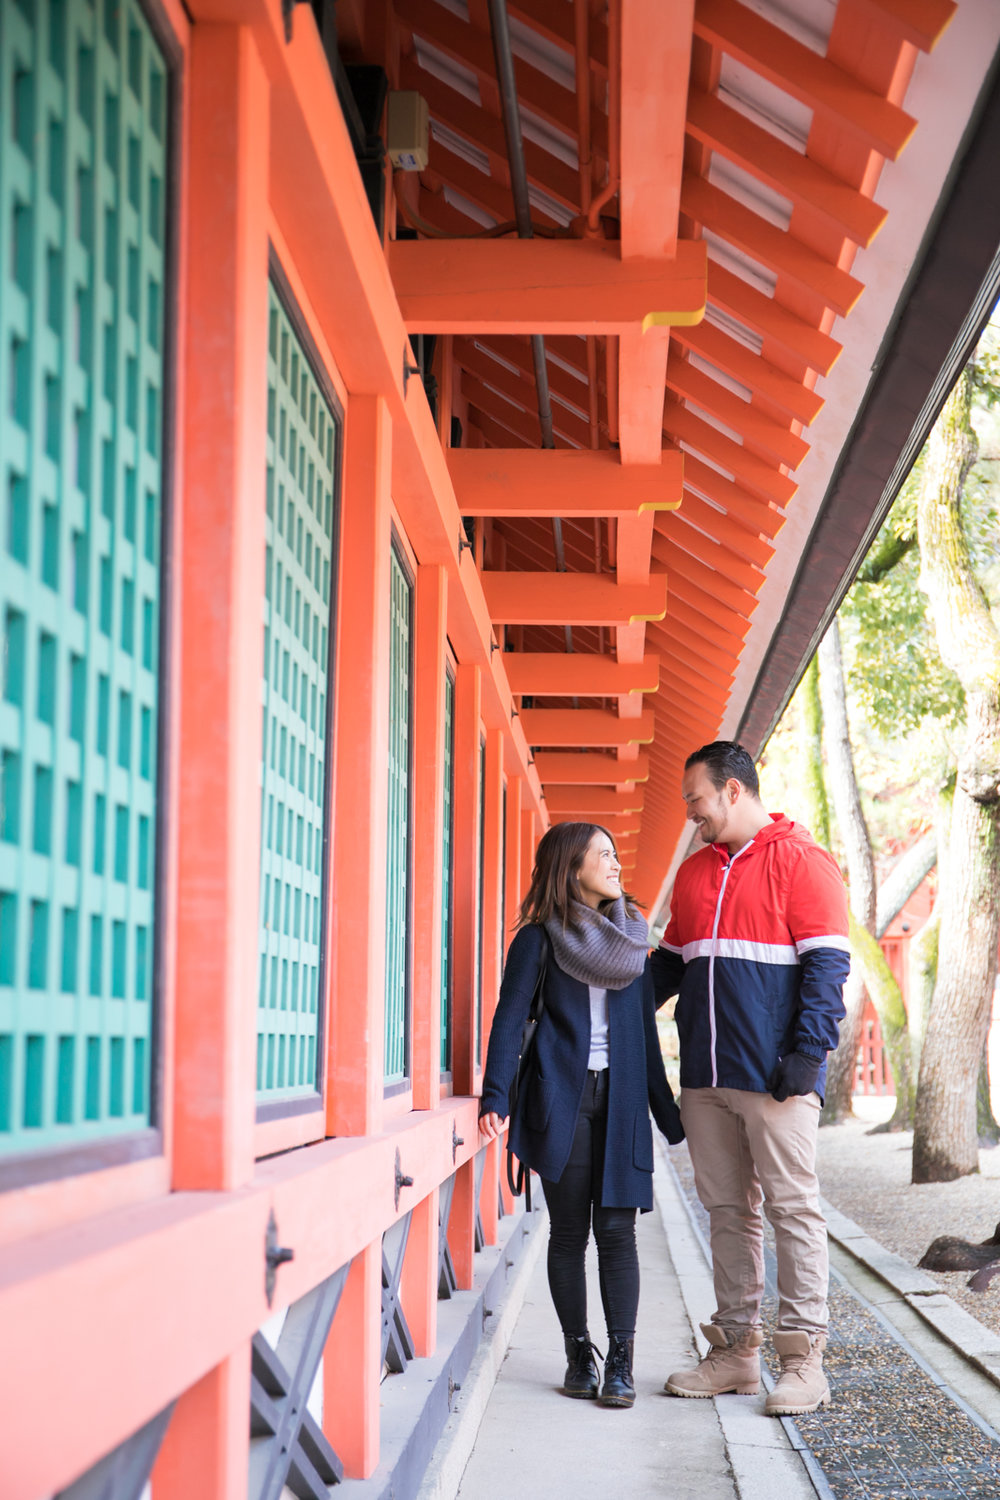 Photography tour in local area Osaka with photographer